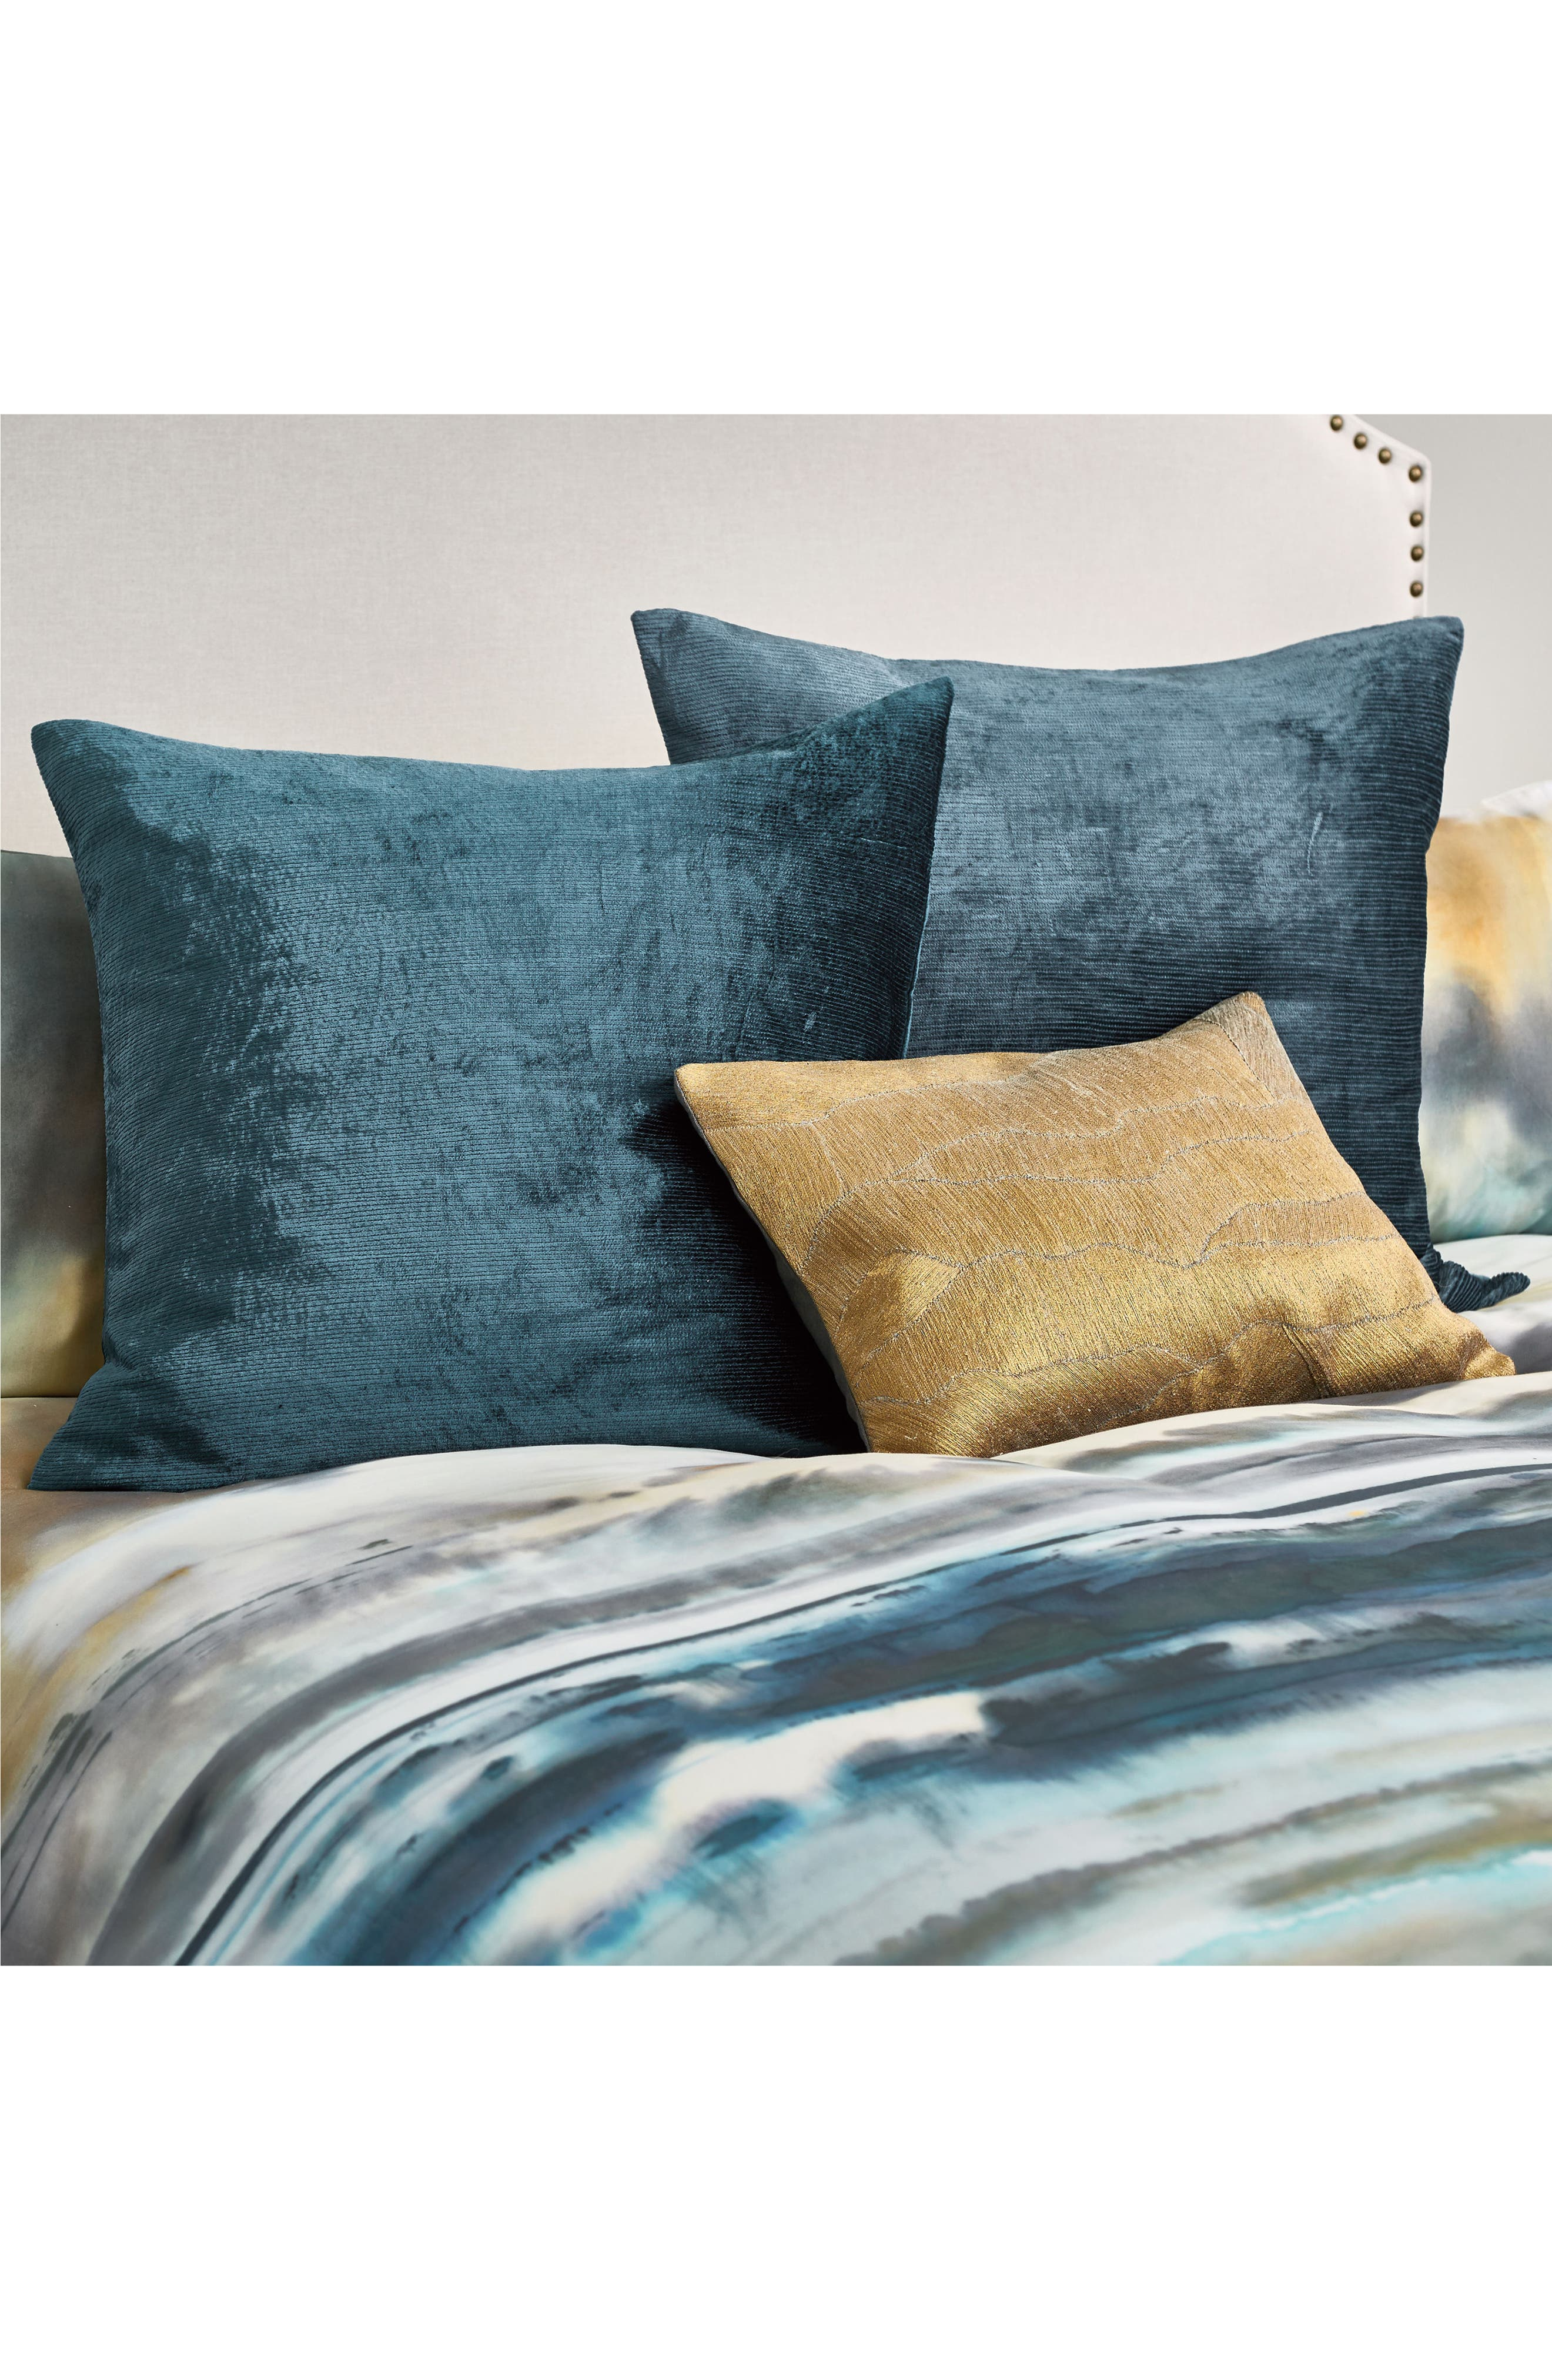 After The Storm Accent Pillow,                             Alternate thumbnail 4, color,                             GOLD